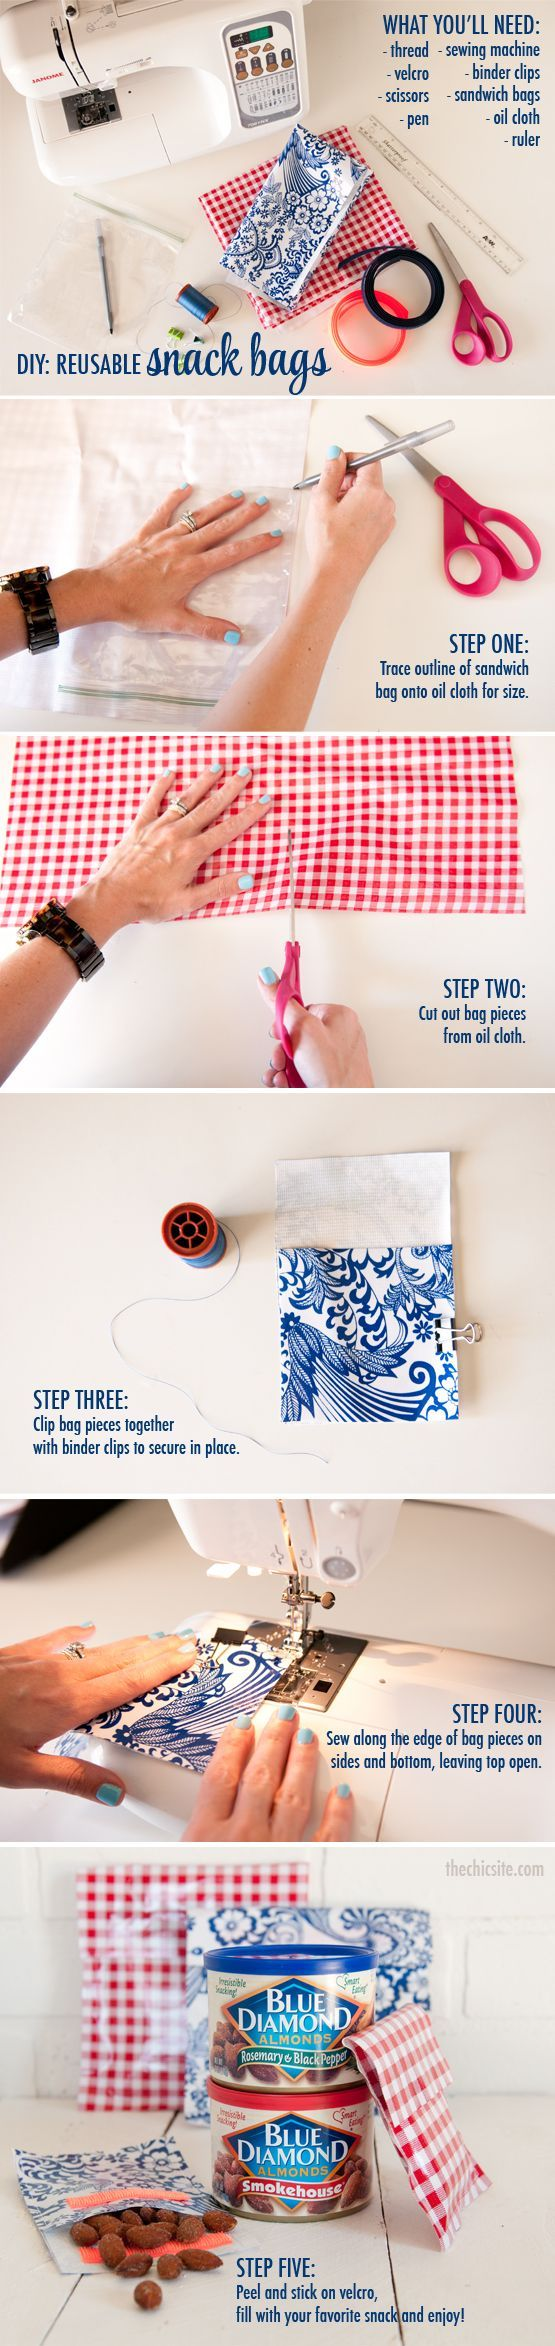 Step by Step how to make DIY Reusable Snack Bags. These snack packs would be great for the kids snacks, baby essentials, makeup bag essentials, or purse organization. You can make these bags in different sizes to meet your needs. This would also make really cute reusable favor bags.